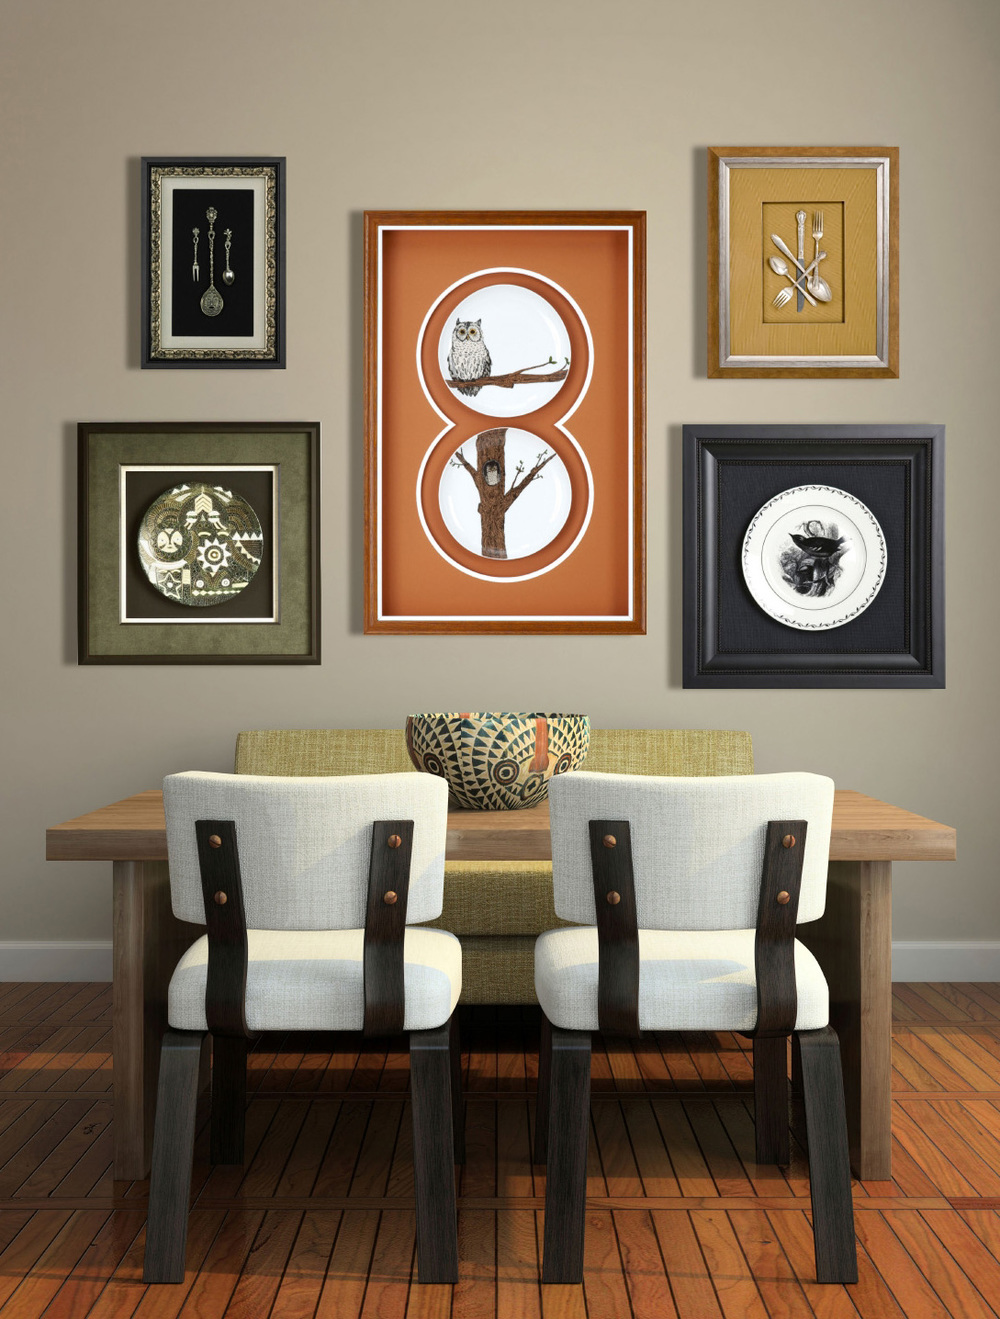 dining room with several framed art pieces on the wall